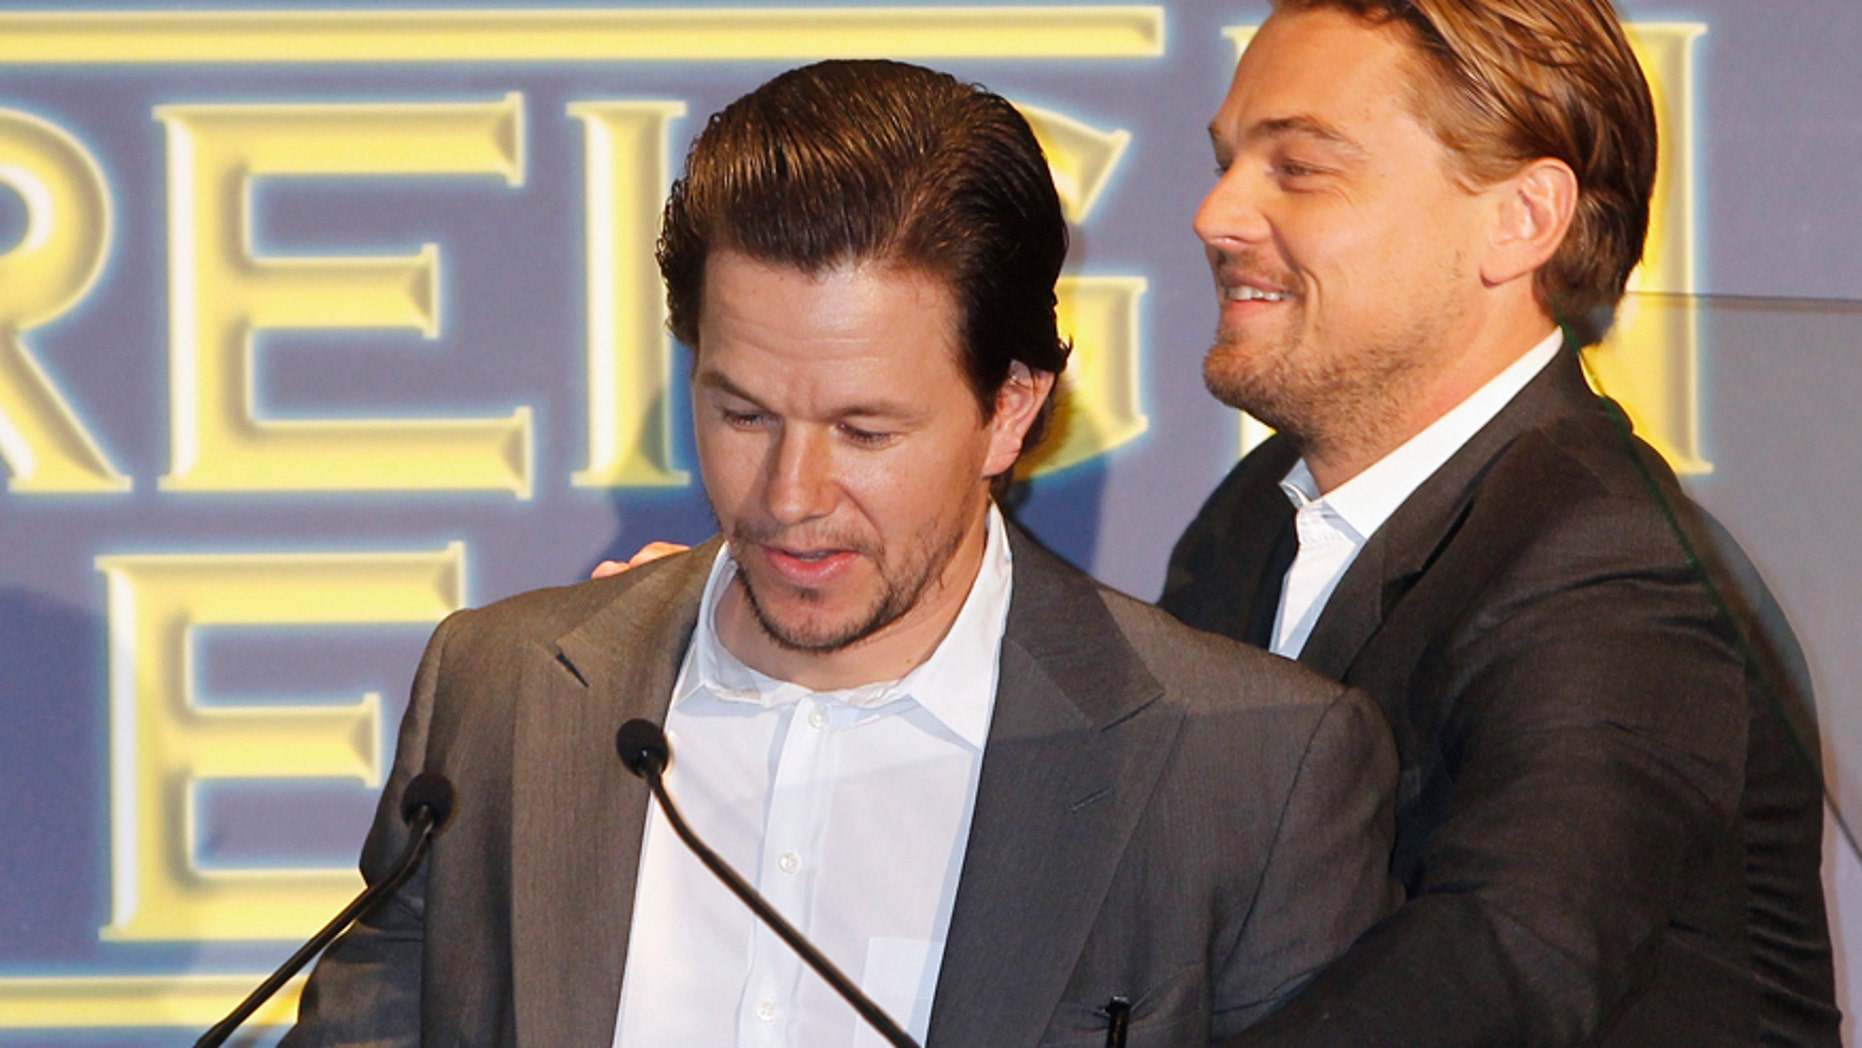 Actors Mark Wahlberg (L) and Leonardo DiCaprio are seen at the podium during the Hollywood Foreign Press Association's (HFPA) Annual Installation Luncheon in Beverly Hills, California August 4, 2011.